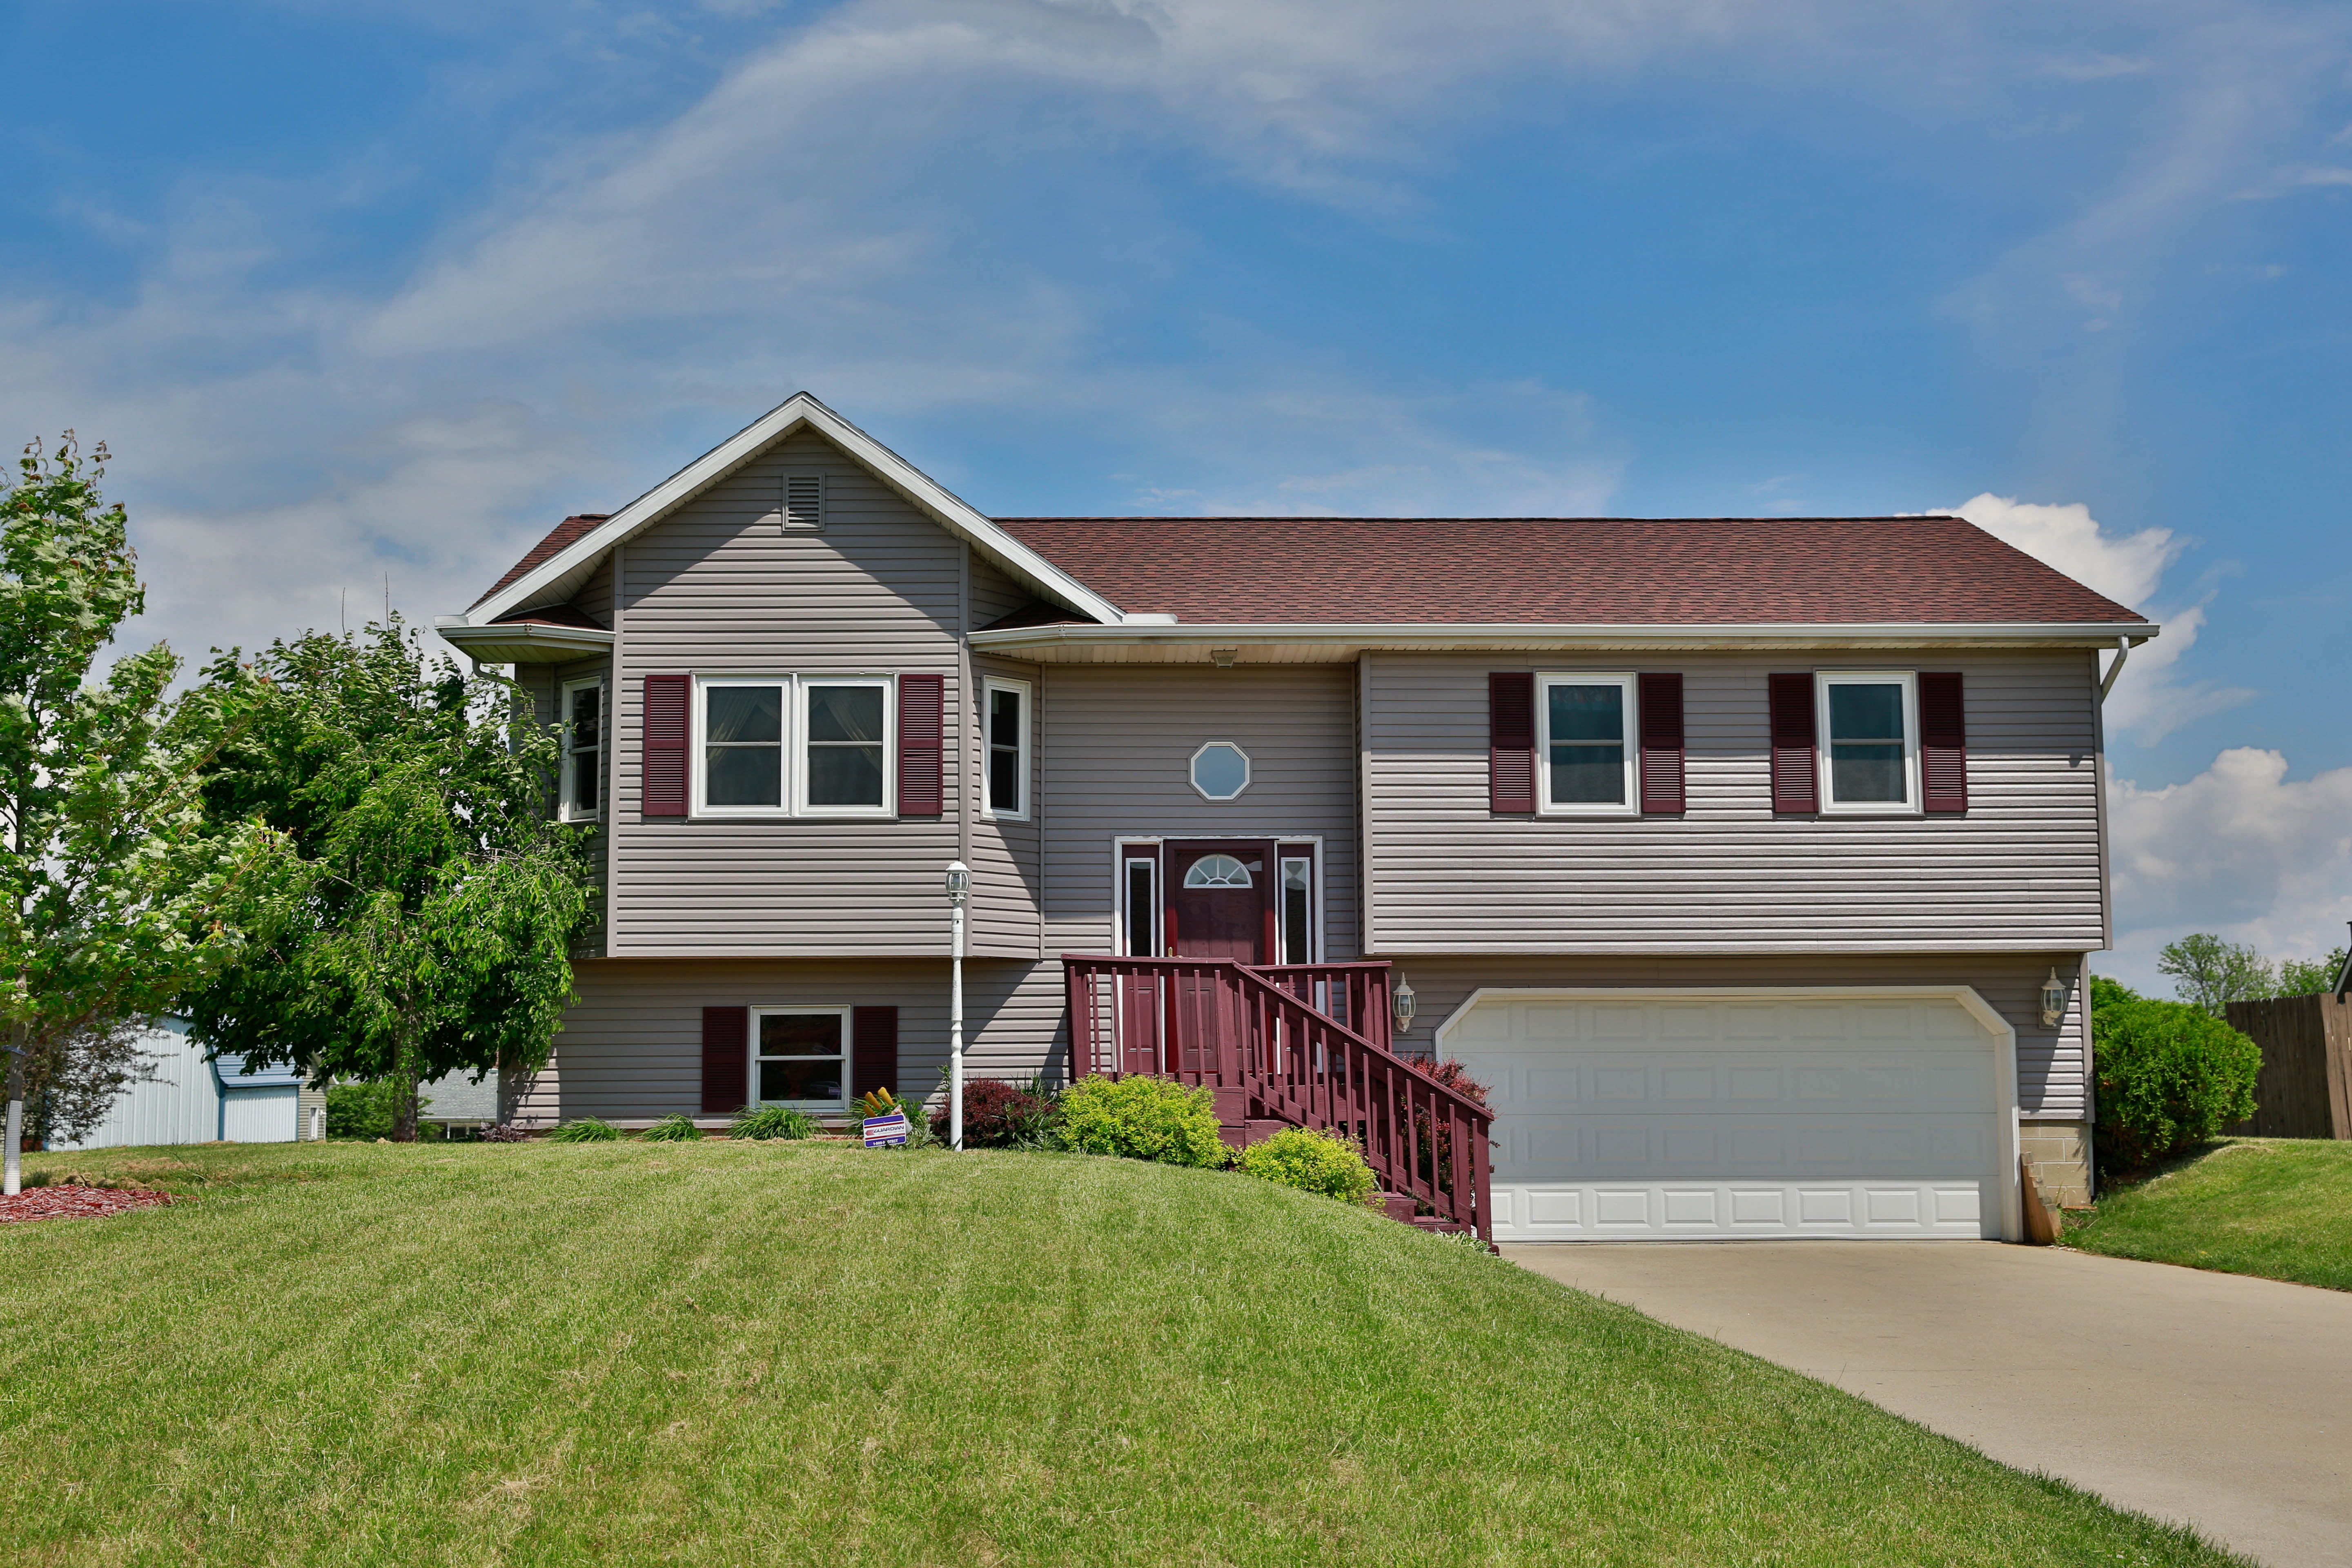 184 Rolling Meadows, Chillicothe, Ohio 45601